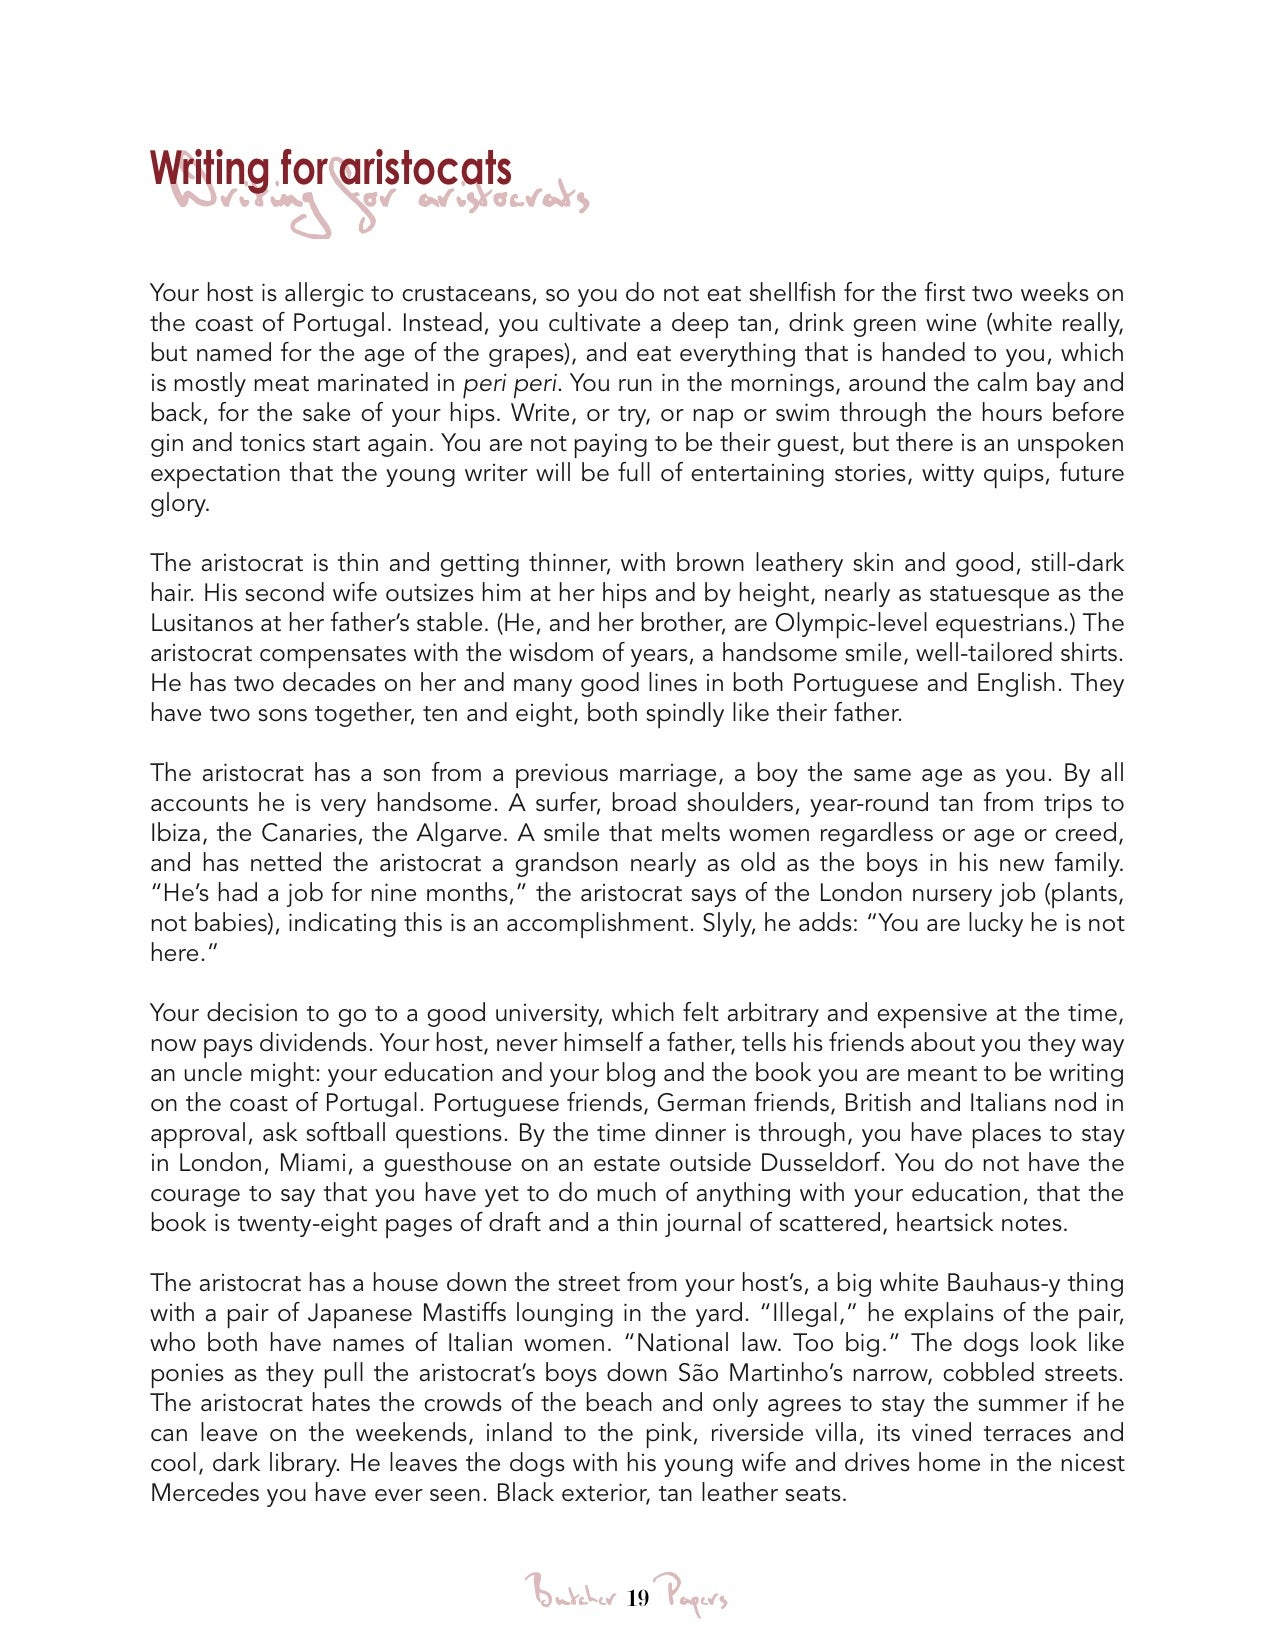 Example of Respect Essay for Oneself